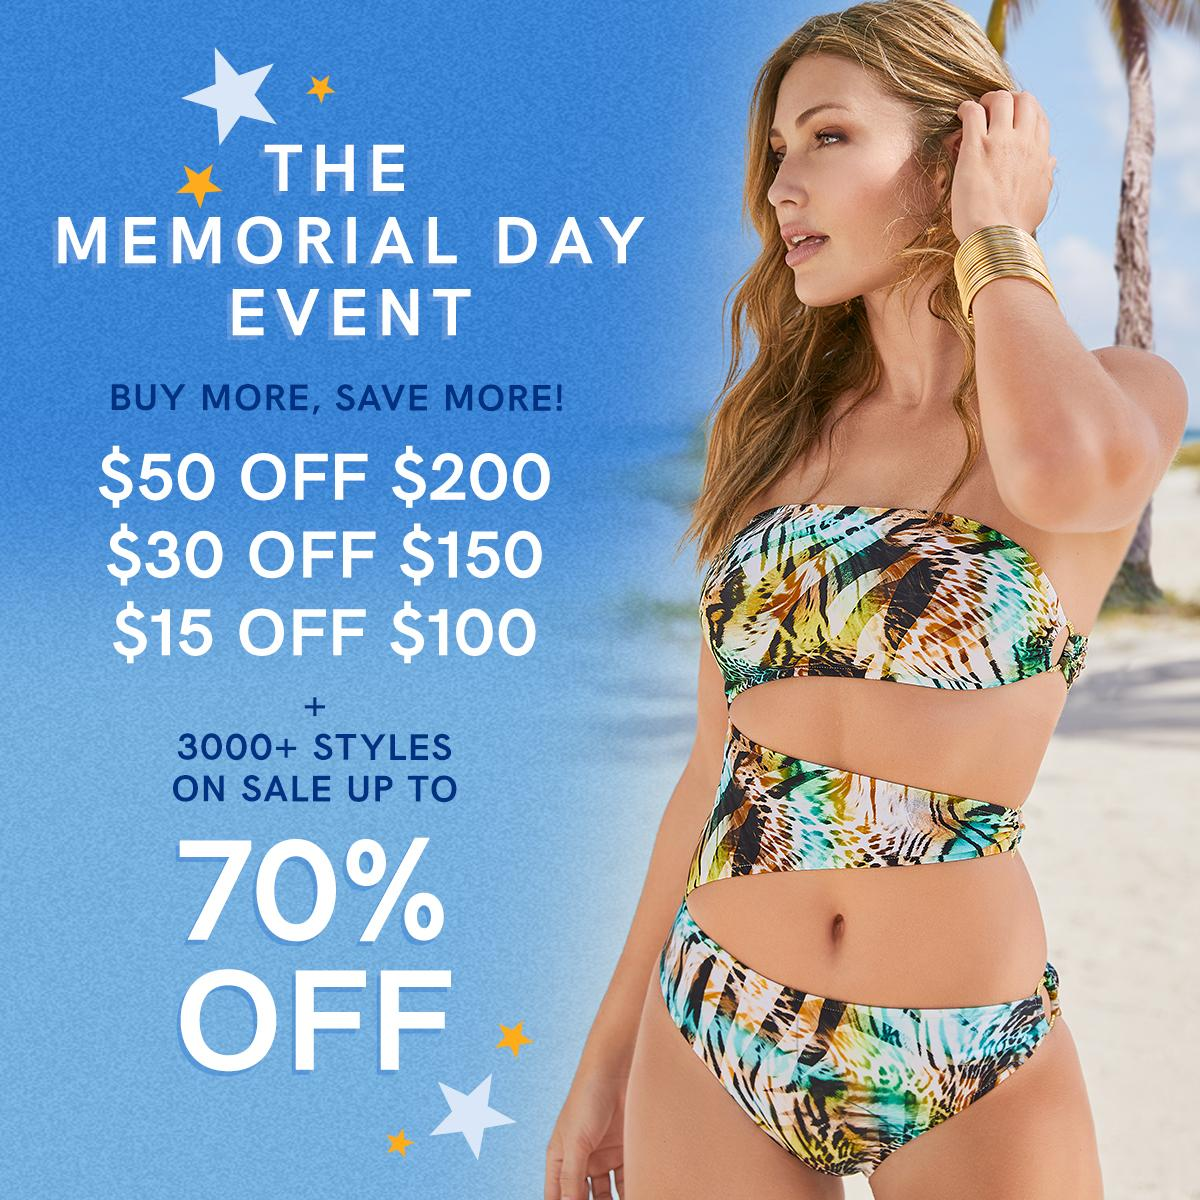 Happy Memorial Day! Today only, the more you buy, the more you save. Plus, don't miss our holiday sale with over 3,000 styles marked down up to 70% off! Hurry, offer expires tonight at midnight ET. https://t.co/CX4sUmZQRG https://t.co/yh96ookdWK